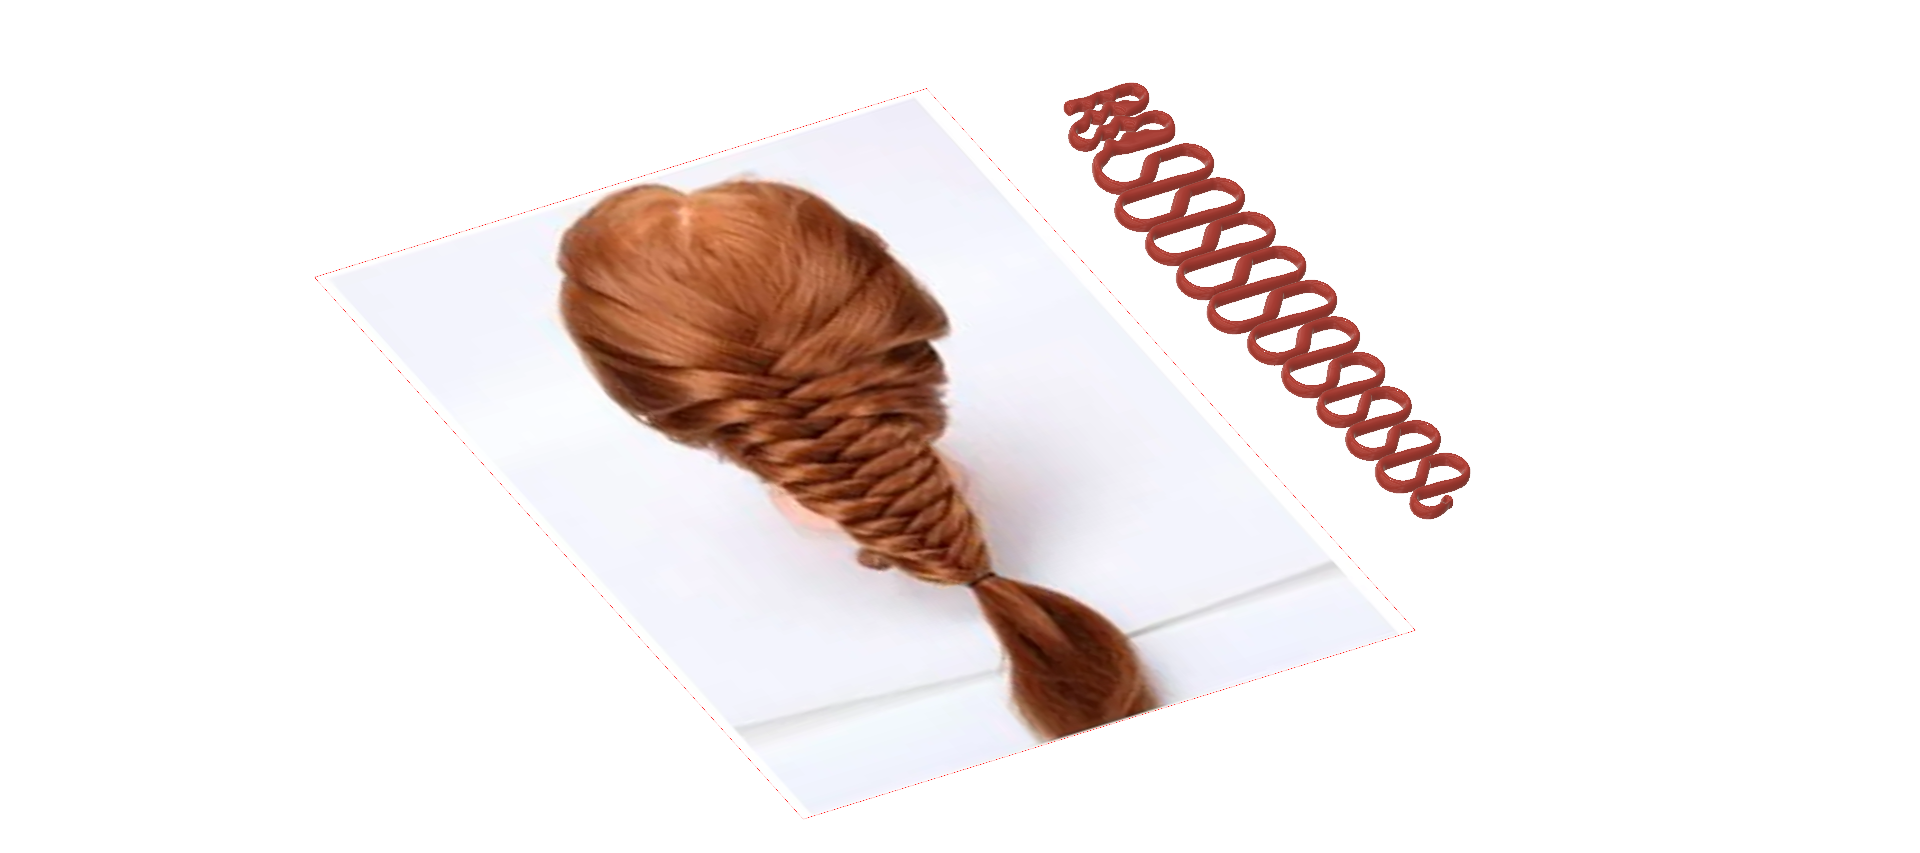 Female braid hair 03 v32-02.png Download STL file hair braid hair styling roller hair accessories for girl headdress female weaving tool fbh-03 3d print cnc • 3D printing object, Dzusto